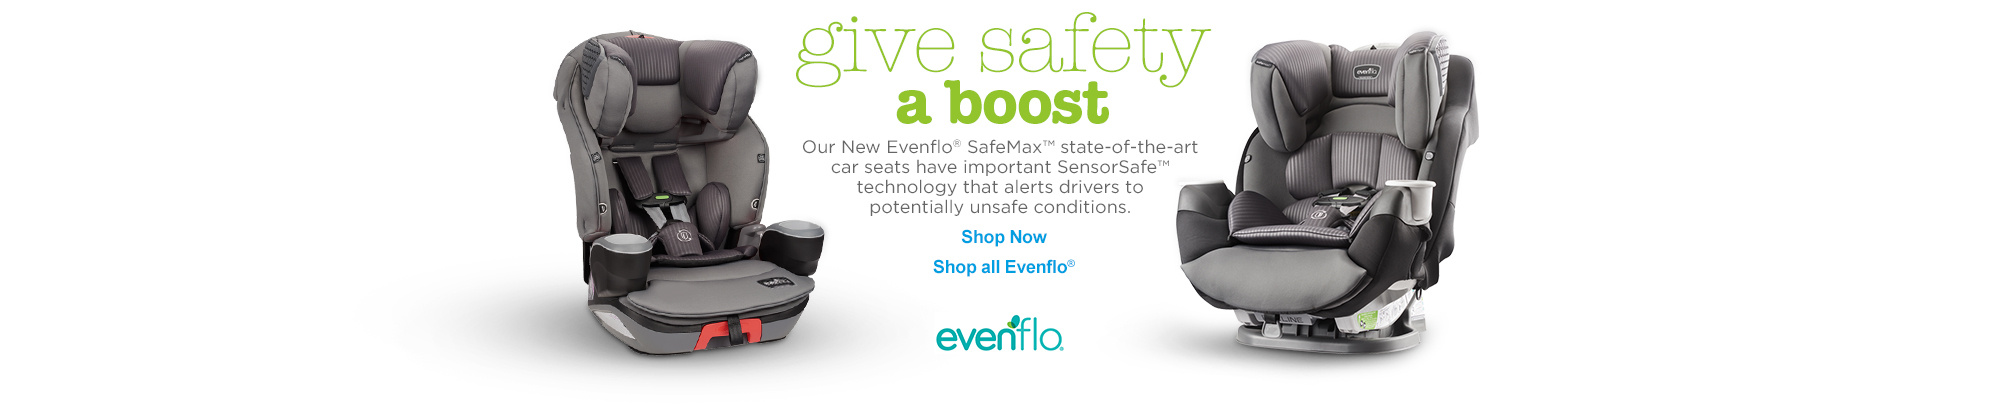 Give Safety a Boost - Evenflo